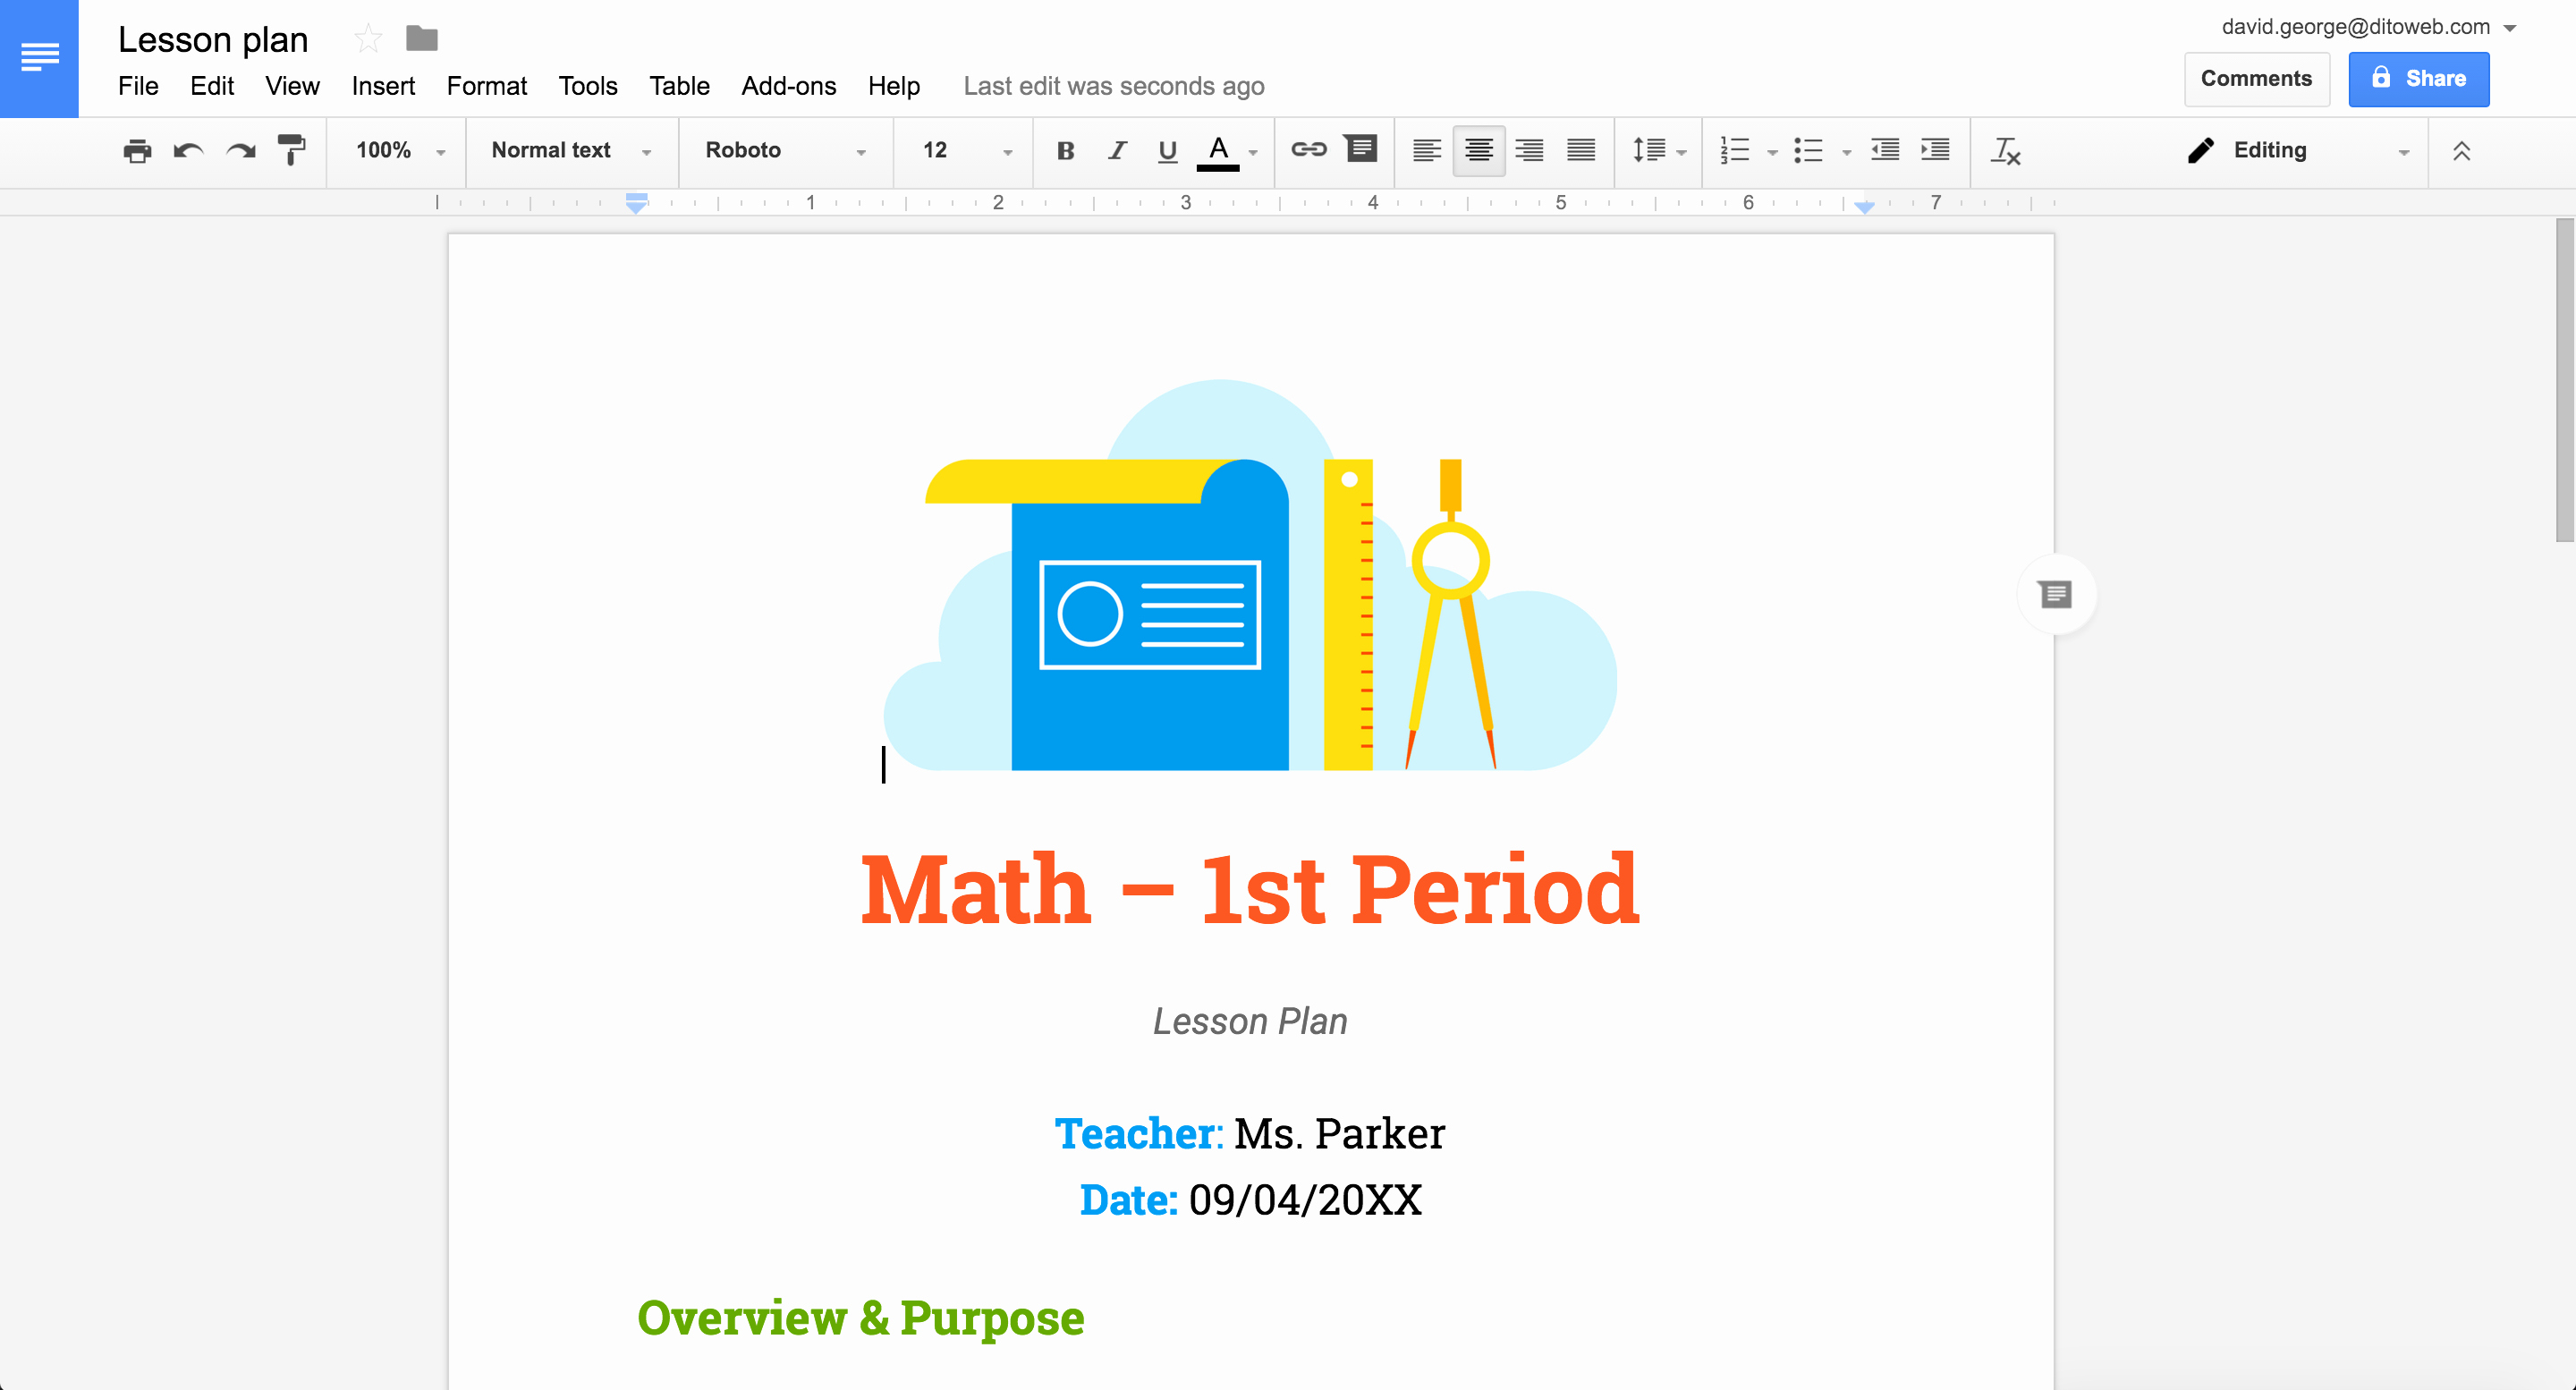 Lesson Plan Template Google Docs Inspirational New Professionally Designed Templates for Docs Sheets